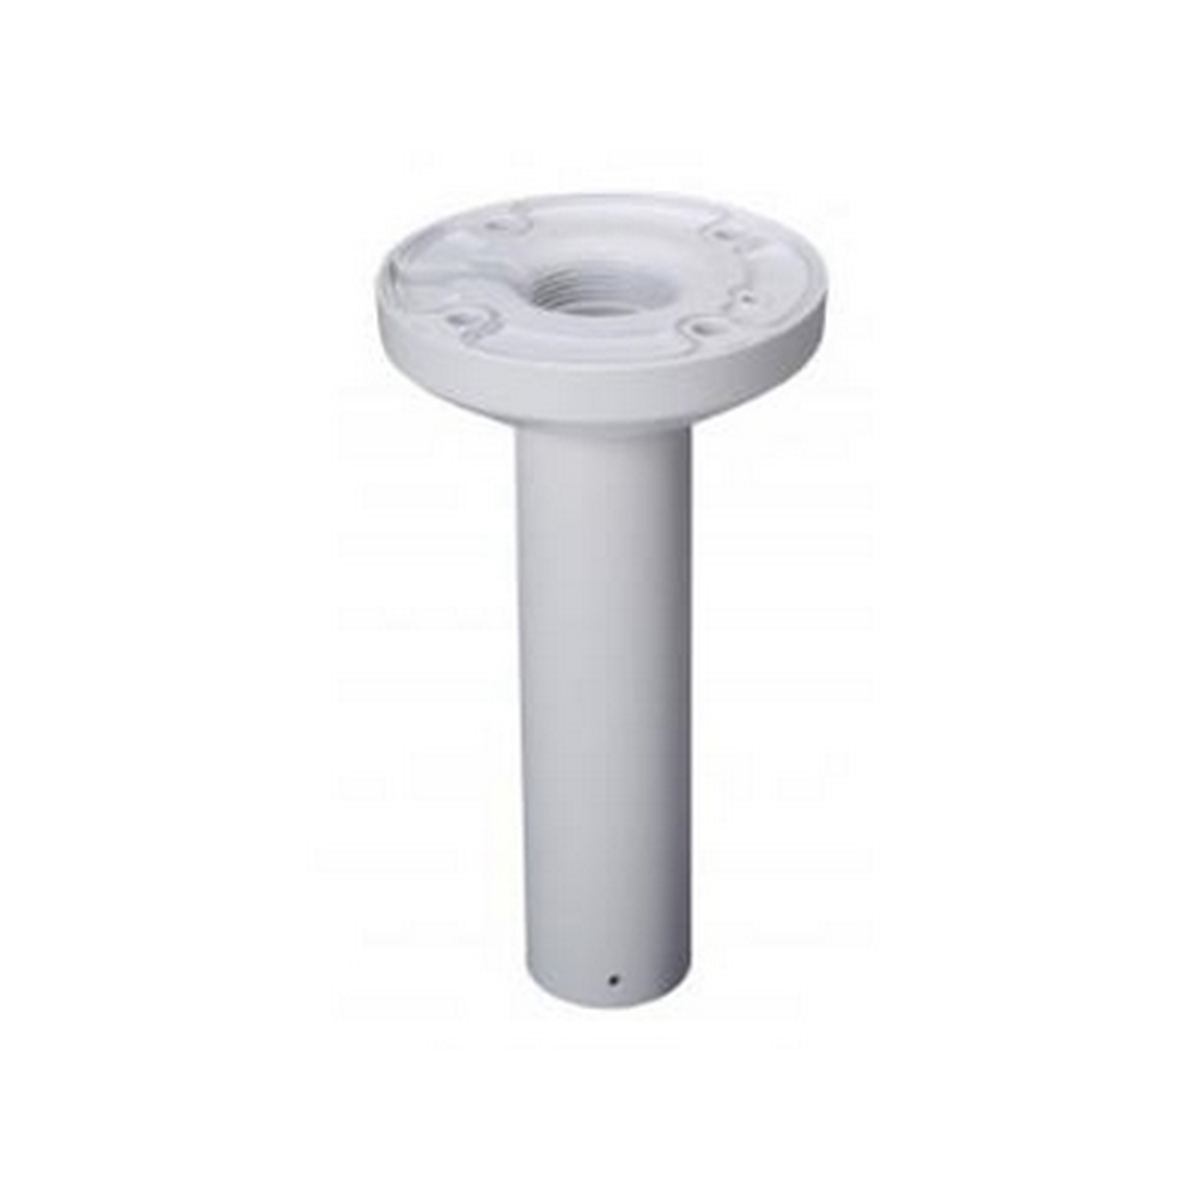 Dahua Material:Aluminum&PC,Color: White,Dimension: F133.6mm*235.5mm,Weight: 0.75Kg Ceiling Mount PFB300C